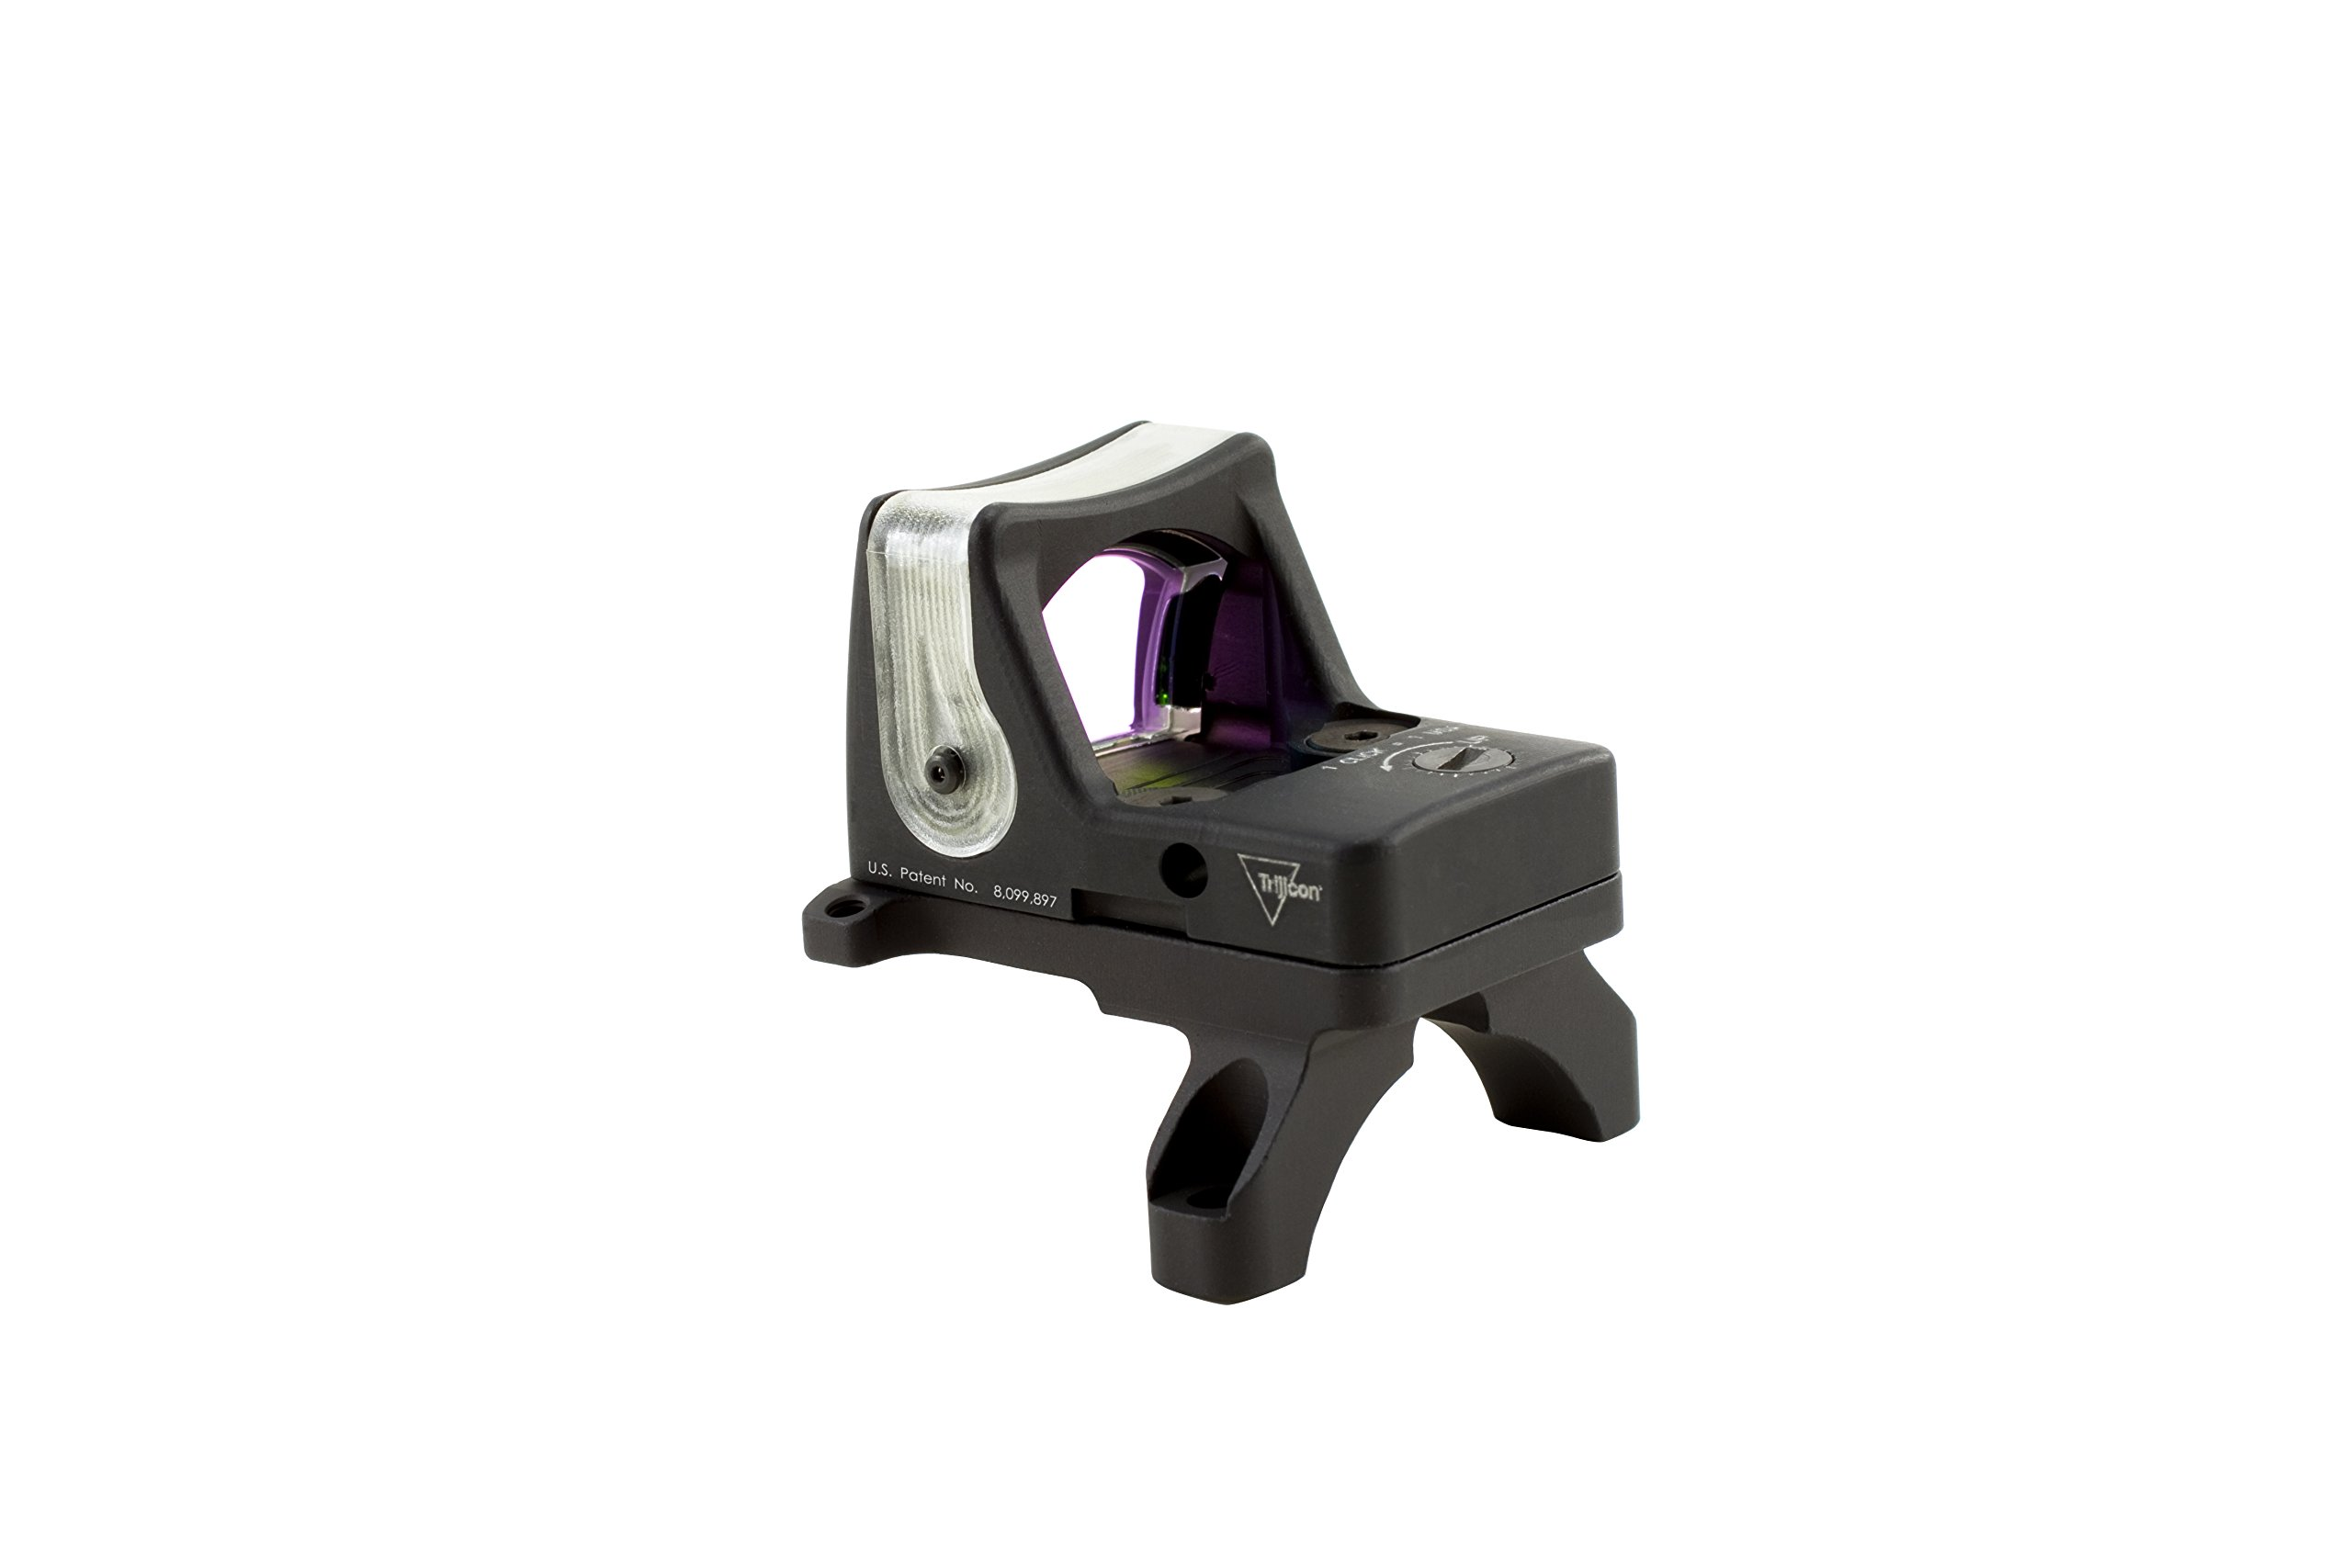 Trijicon RM04-35 RMR 7 MOA Dual-Illuminated Amber Dot Sight with RM35 Full Size ACOG Mount with Bosses by Trijicon (Image #3)